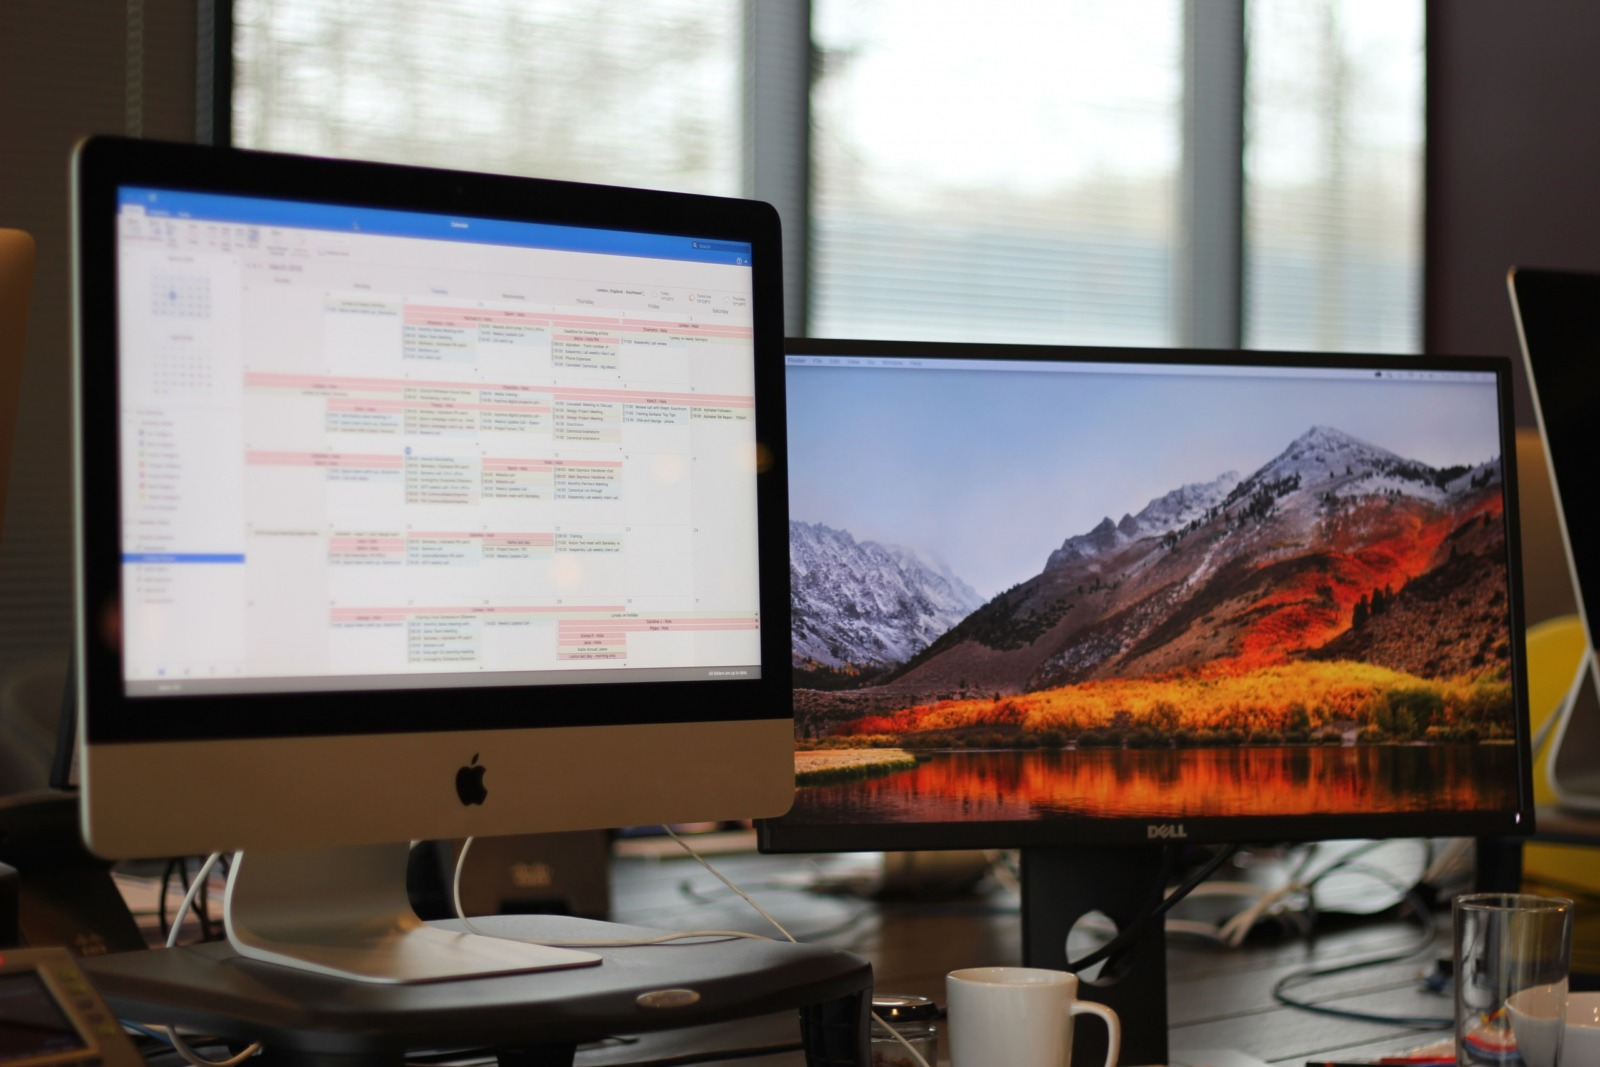 A desk with two computer monitors, one showing a calendar.